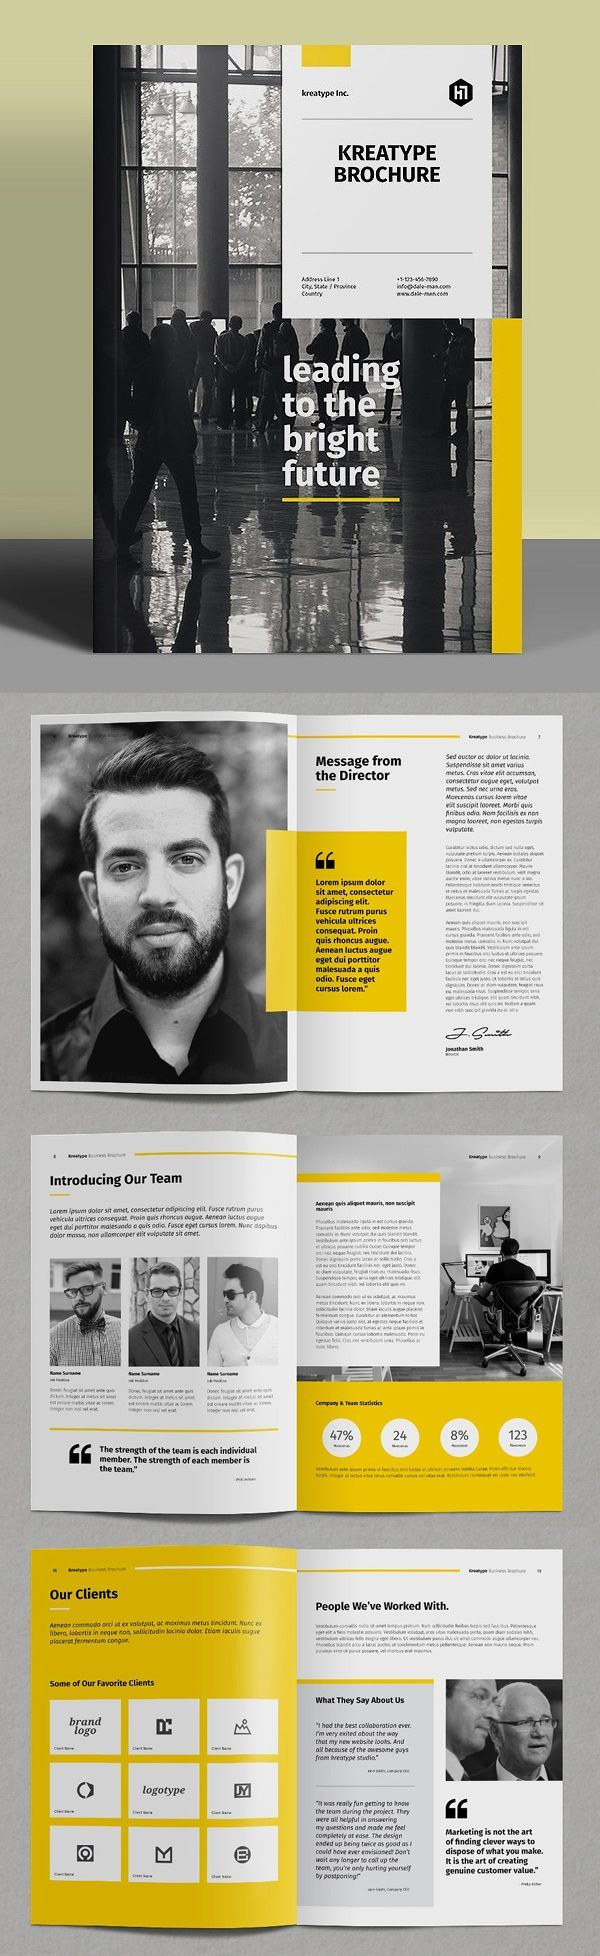 Corporate Design / Editorial / Paper Craft / Type. If you like UX, design, or design thinking, check out theuxblog.com podcast https://itunes.apple.com/us/podcast/ux-blog-user-experience-design/id1127946001?mt=2